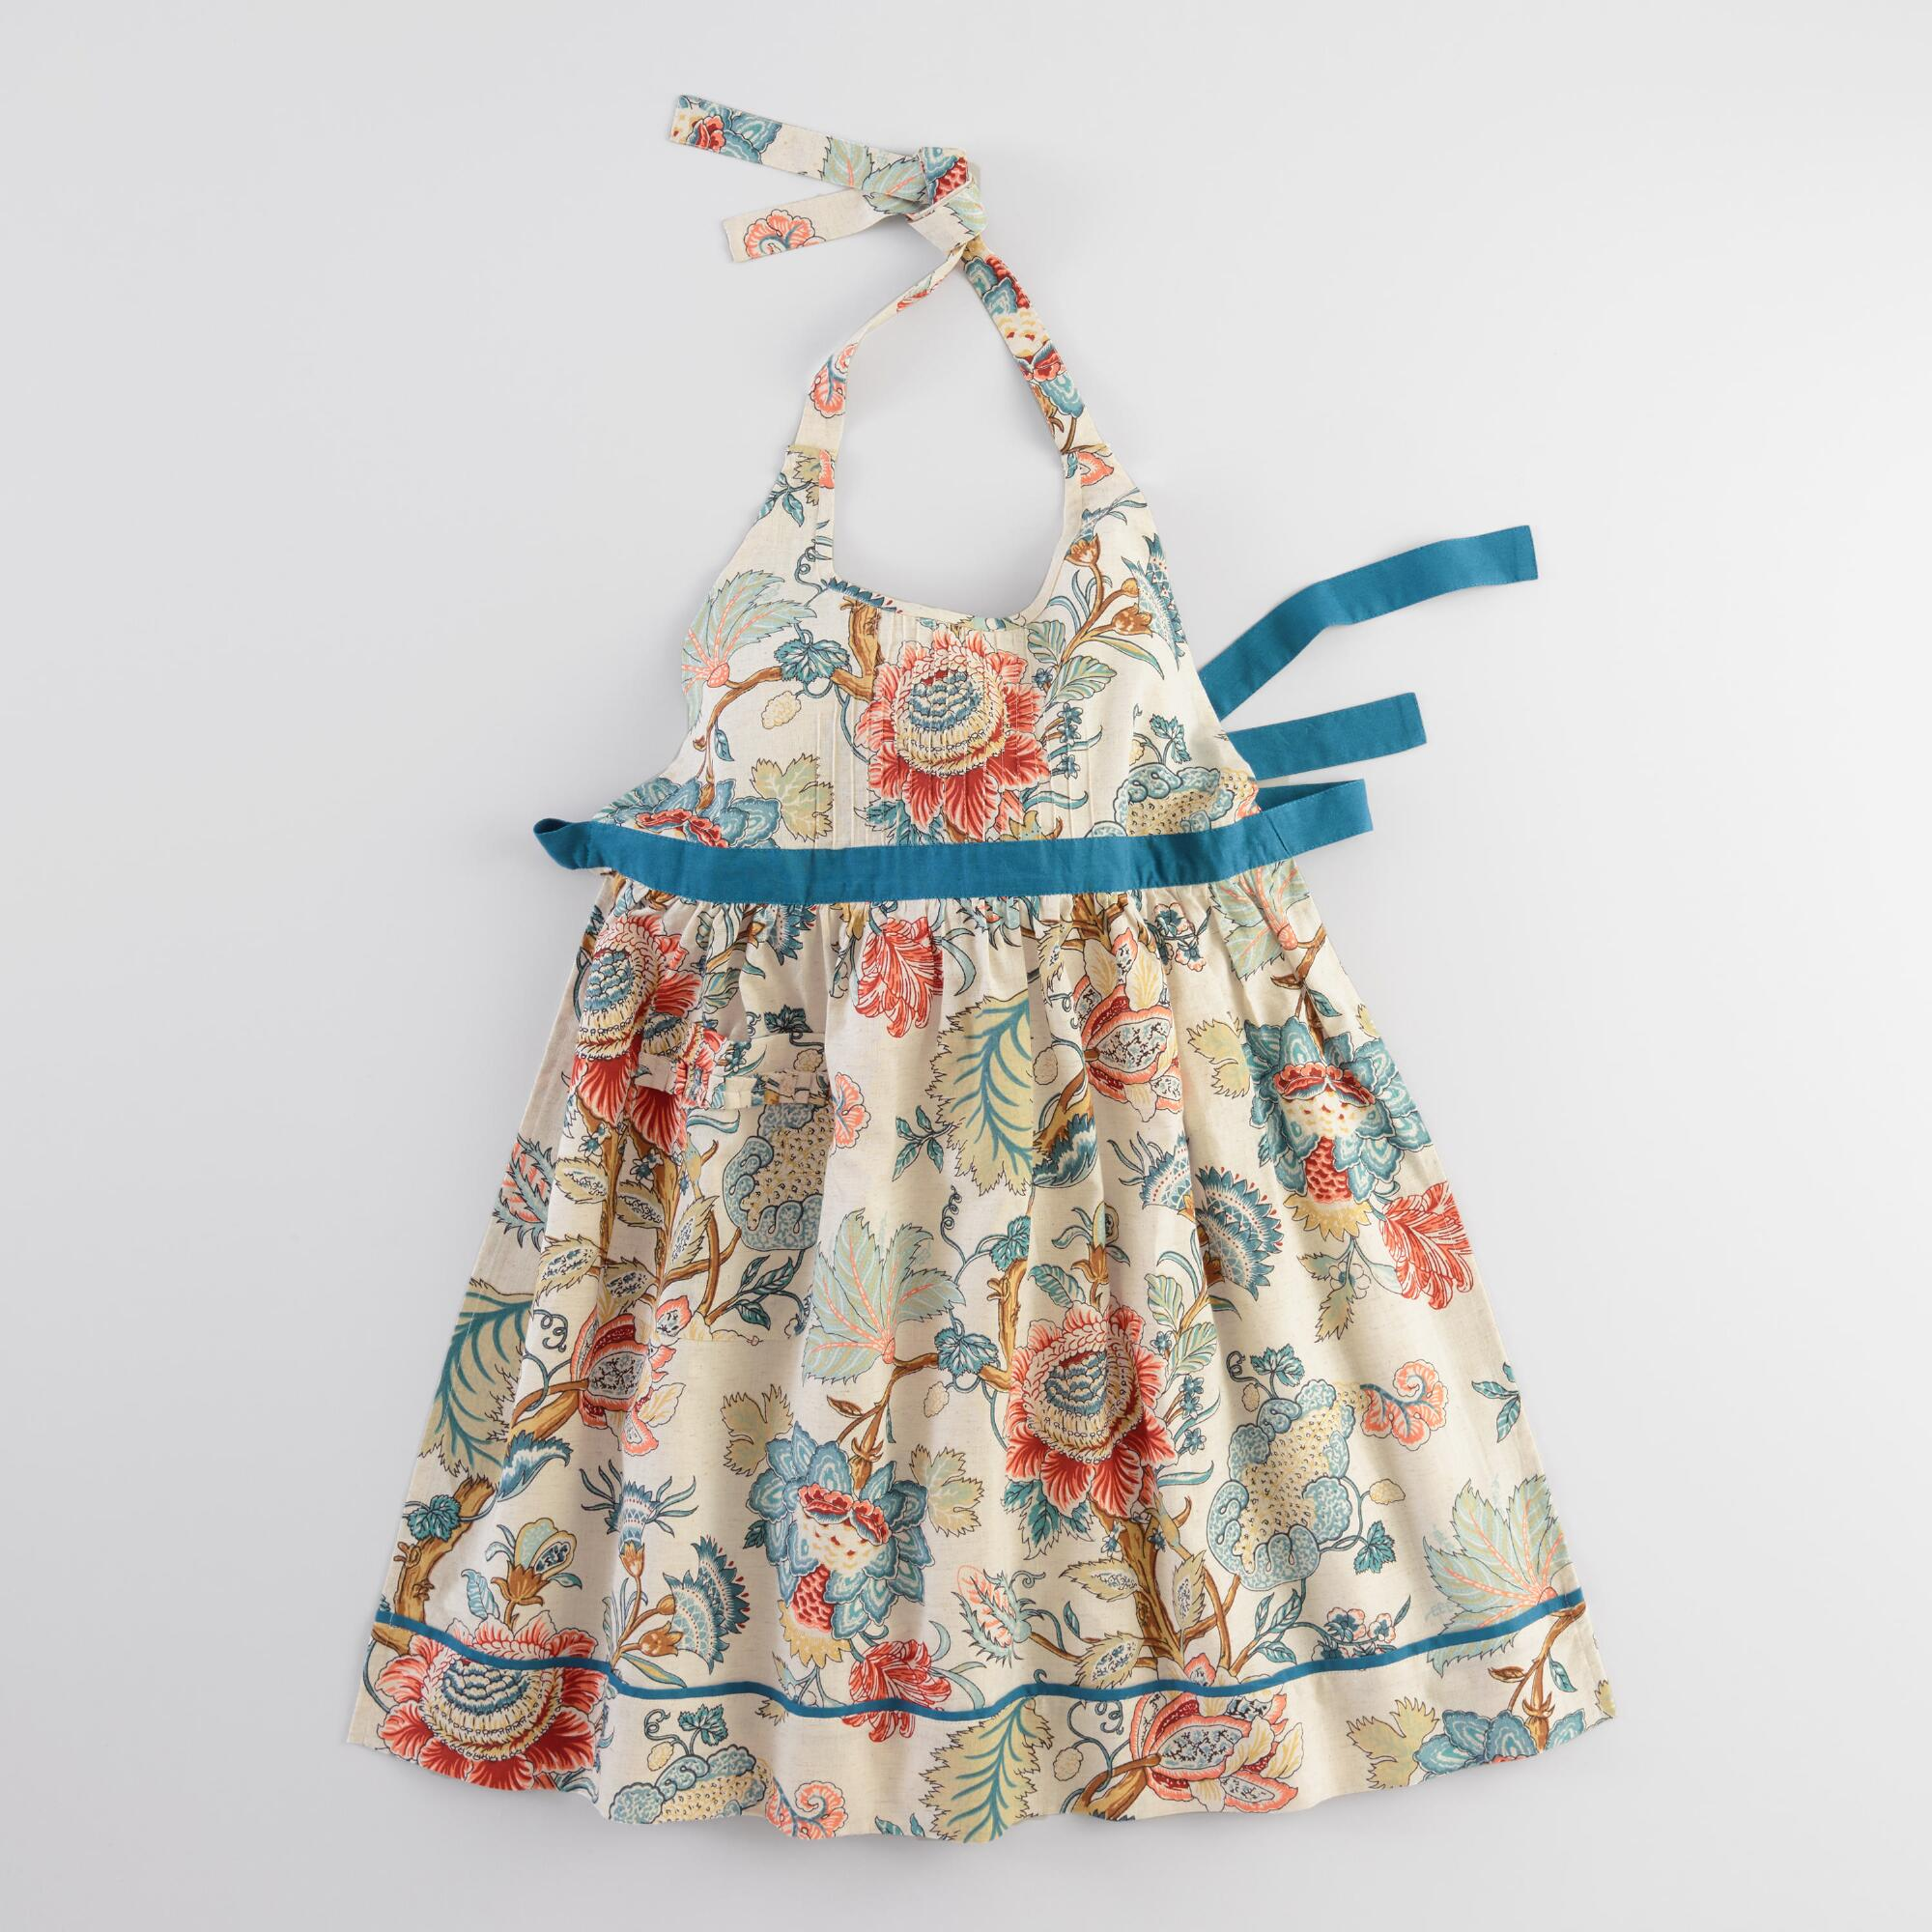 Vintage Aprons, Retro Aprons, Old Fashioned Aprons & Patterns Blue Palampore Anika Apron - Cotton by World Market $19.99 AT vintagedancer.com